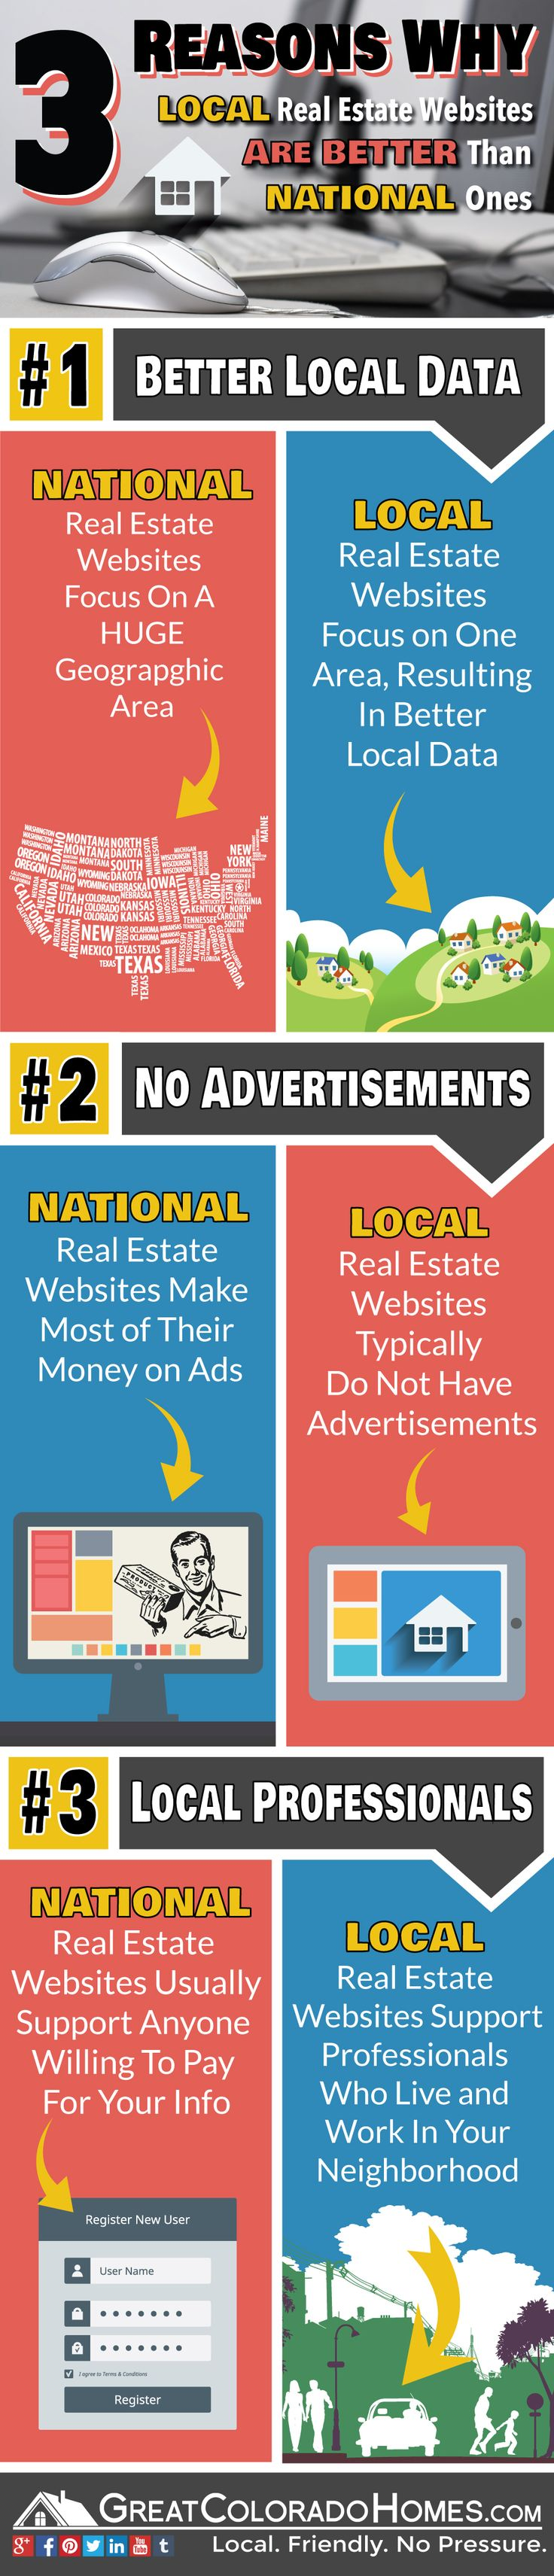 3 reasons why local real estate websites are better than the larger national websites http